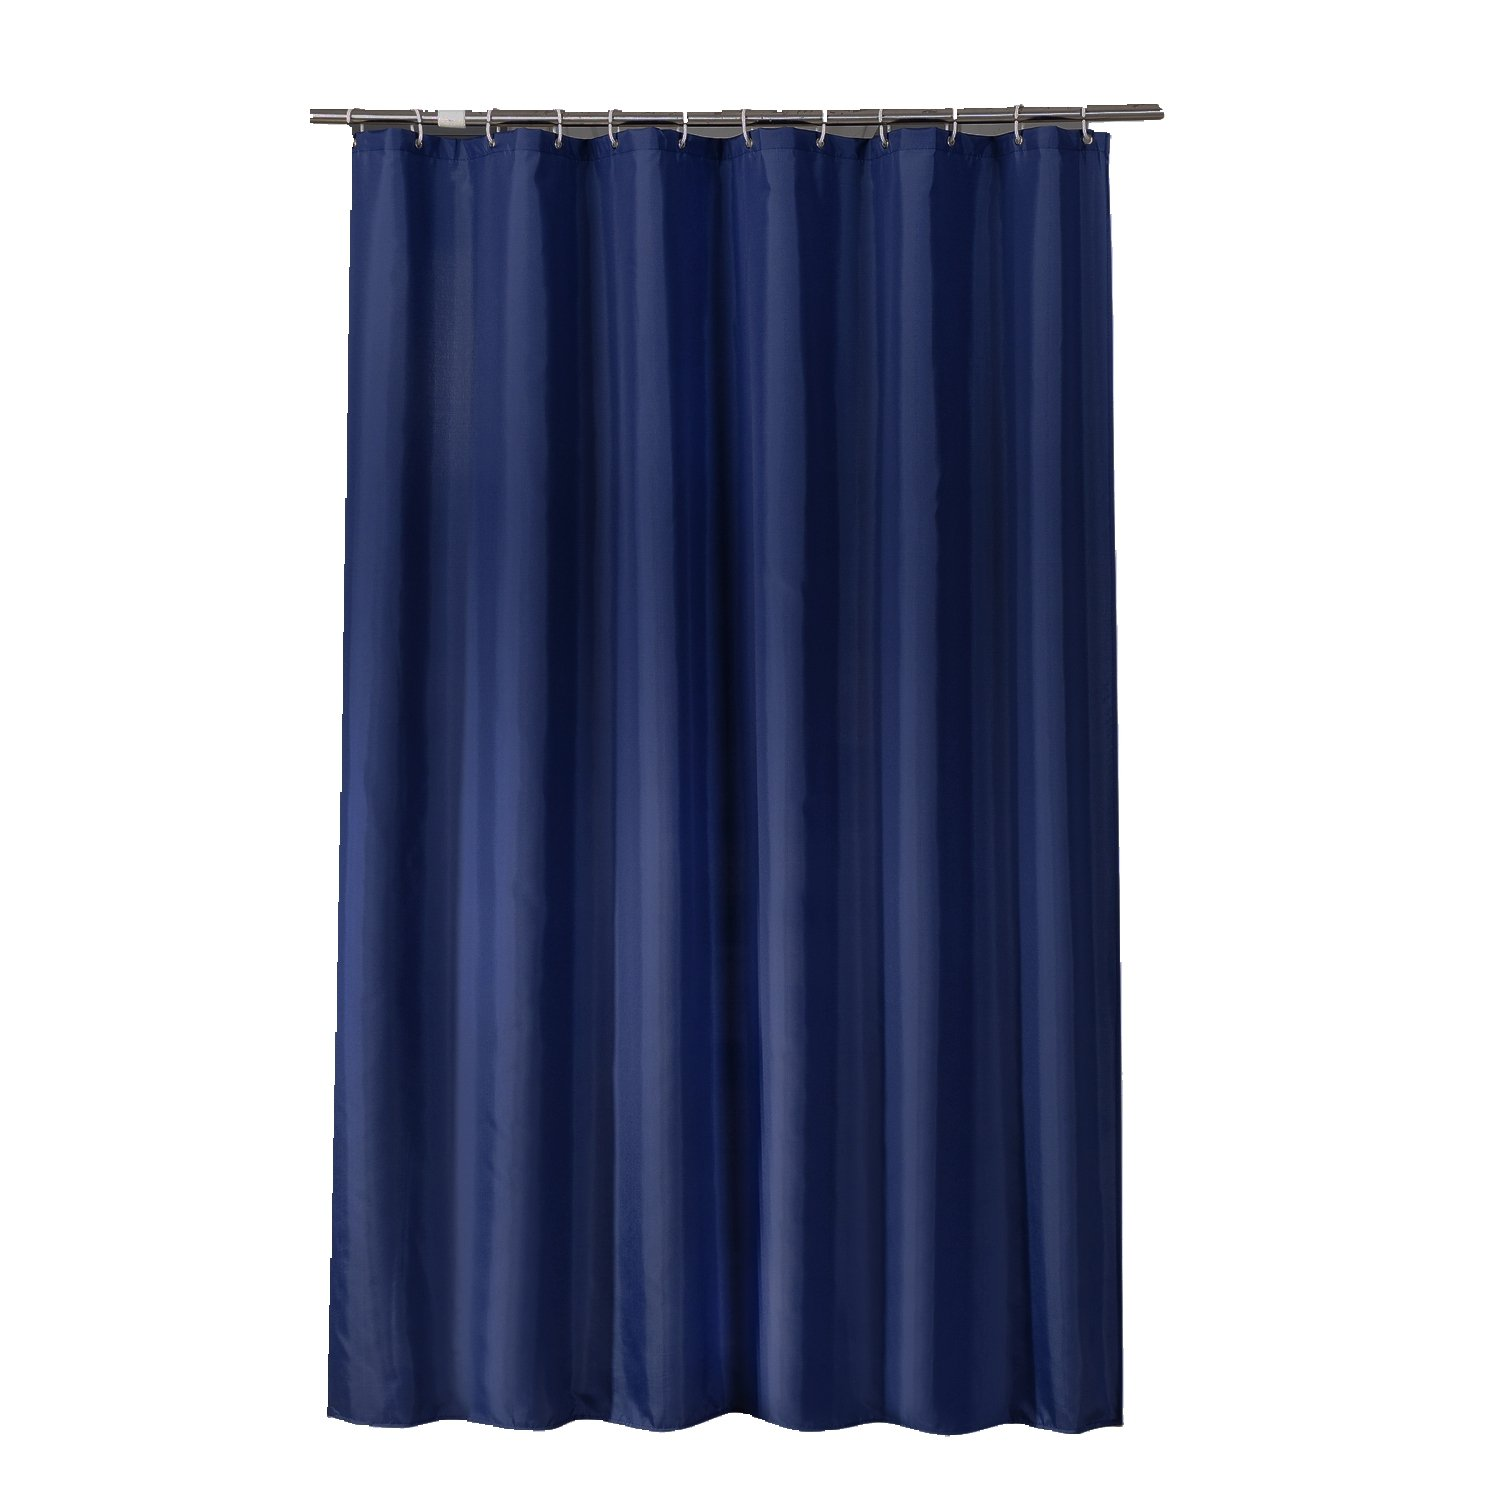 Sfoothome 60 Inch Wide x 72Inch Long Hotel Fabric Shower Curtain Waterproof and Mildew Free Bath Curtains Heavy Weight, Navy Blue